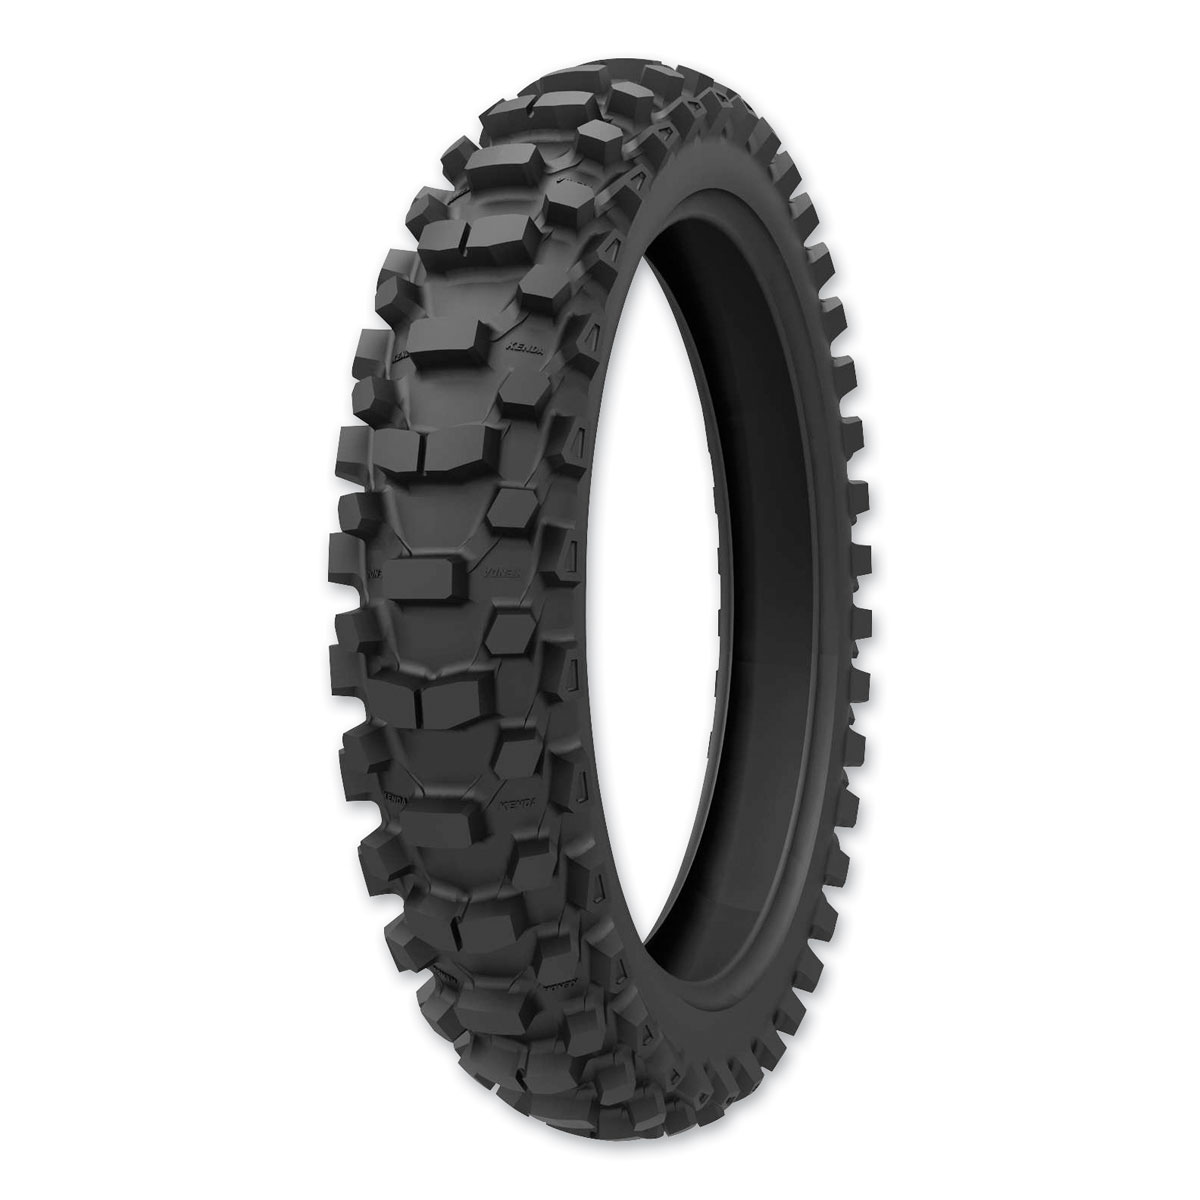 Kenda Tires K785 Millville II 110/80-19 Rear Tire